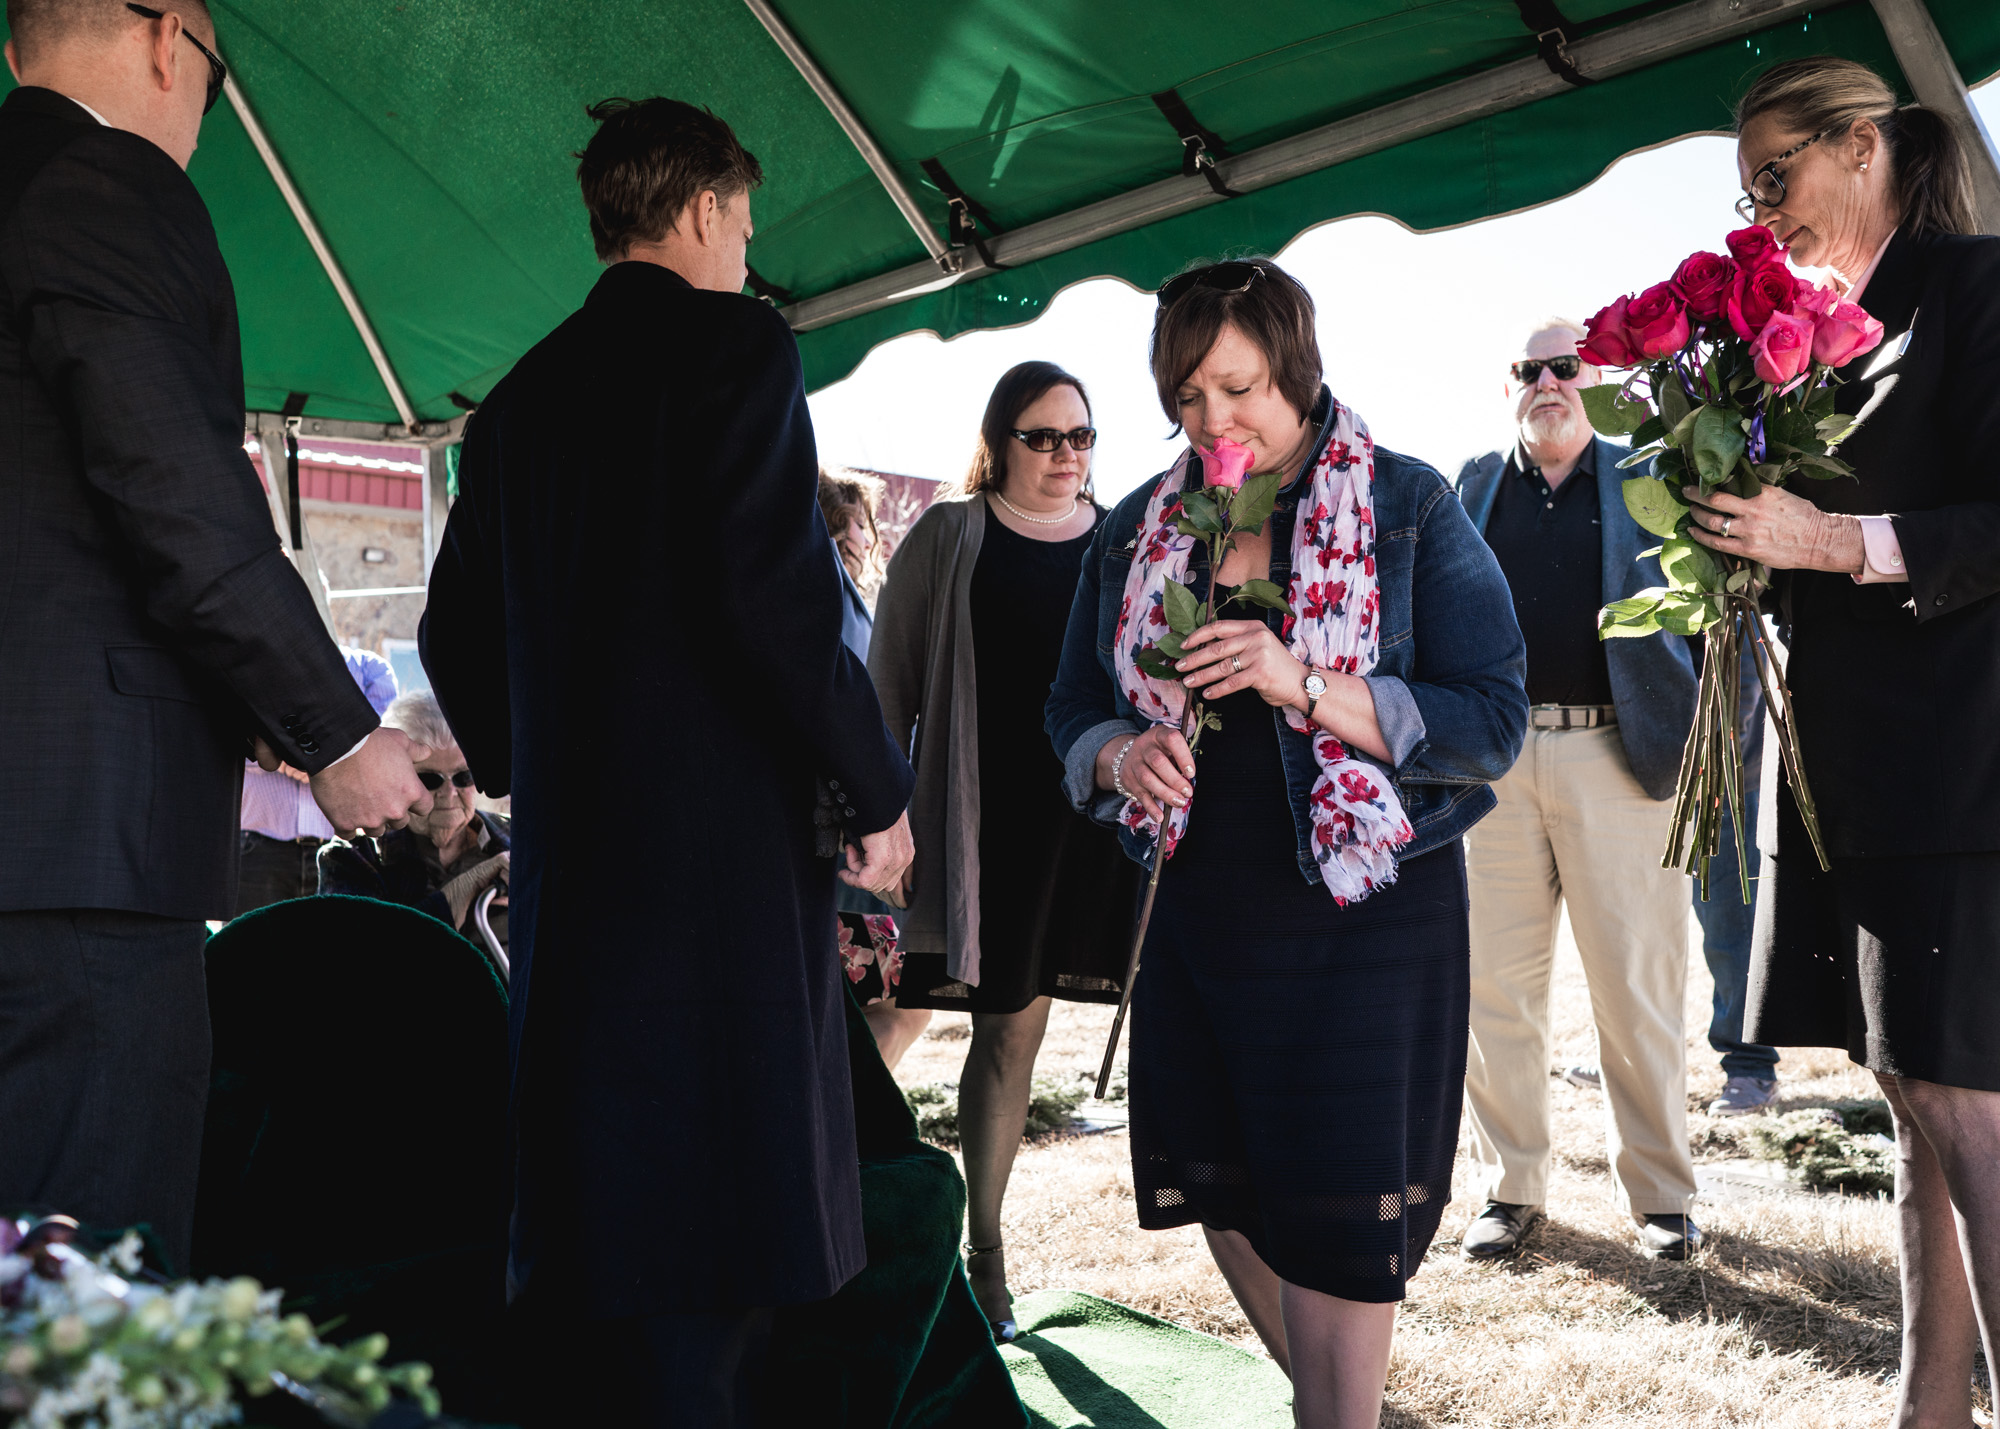 A woman smells a rose as she prepares to place it on the final resting place of her beloved grandmother during her memorial service at a cemetery in Greeley, CO